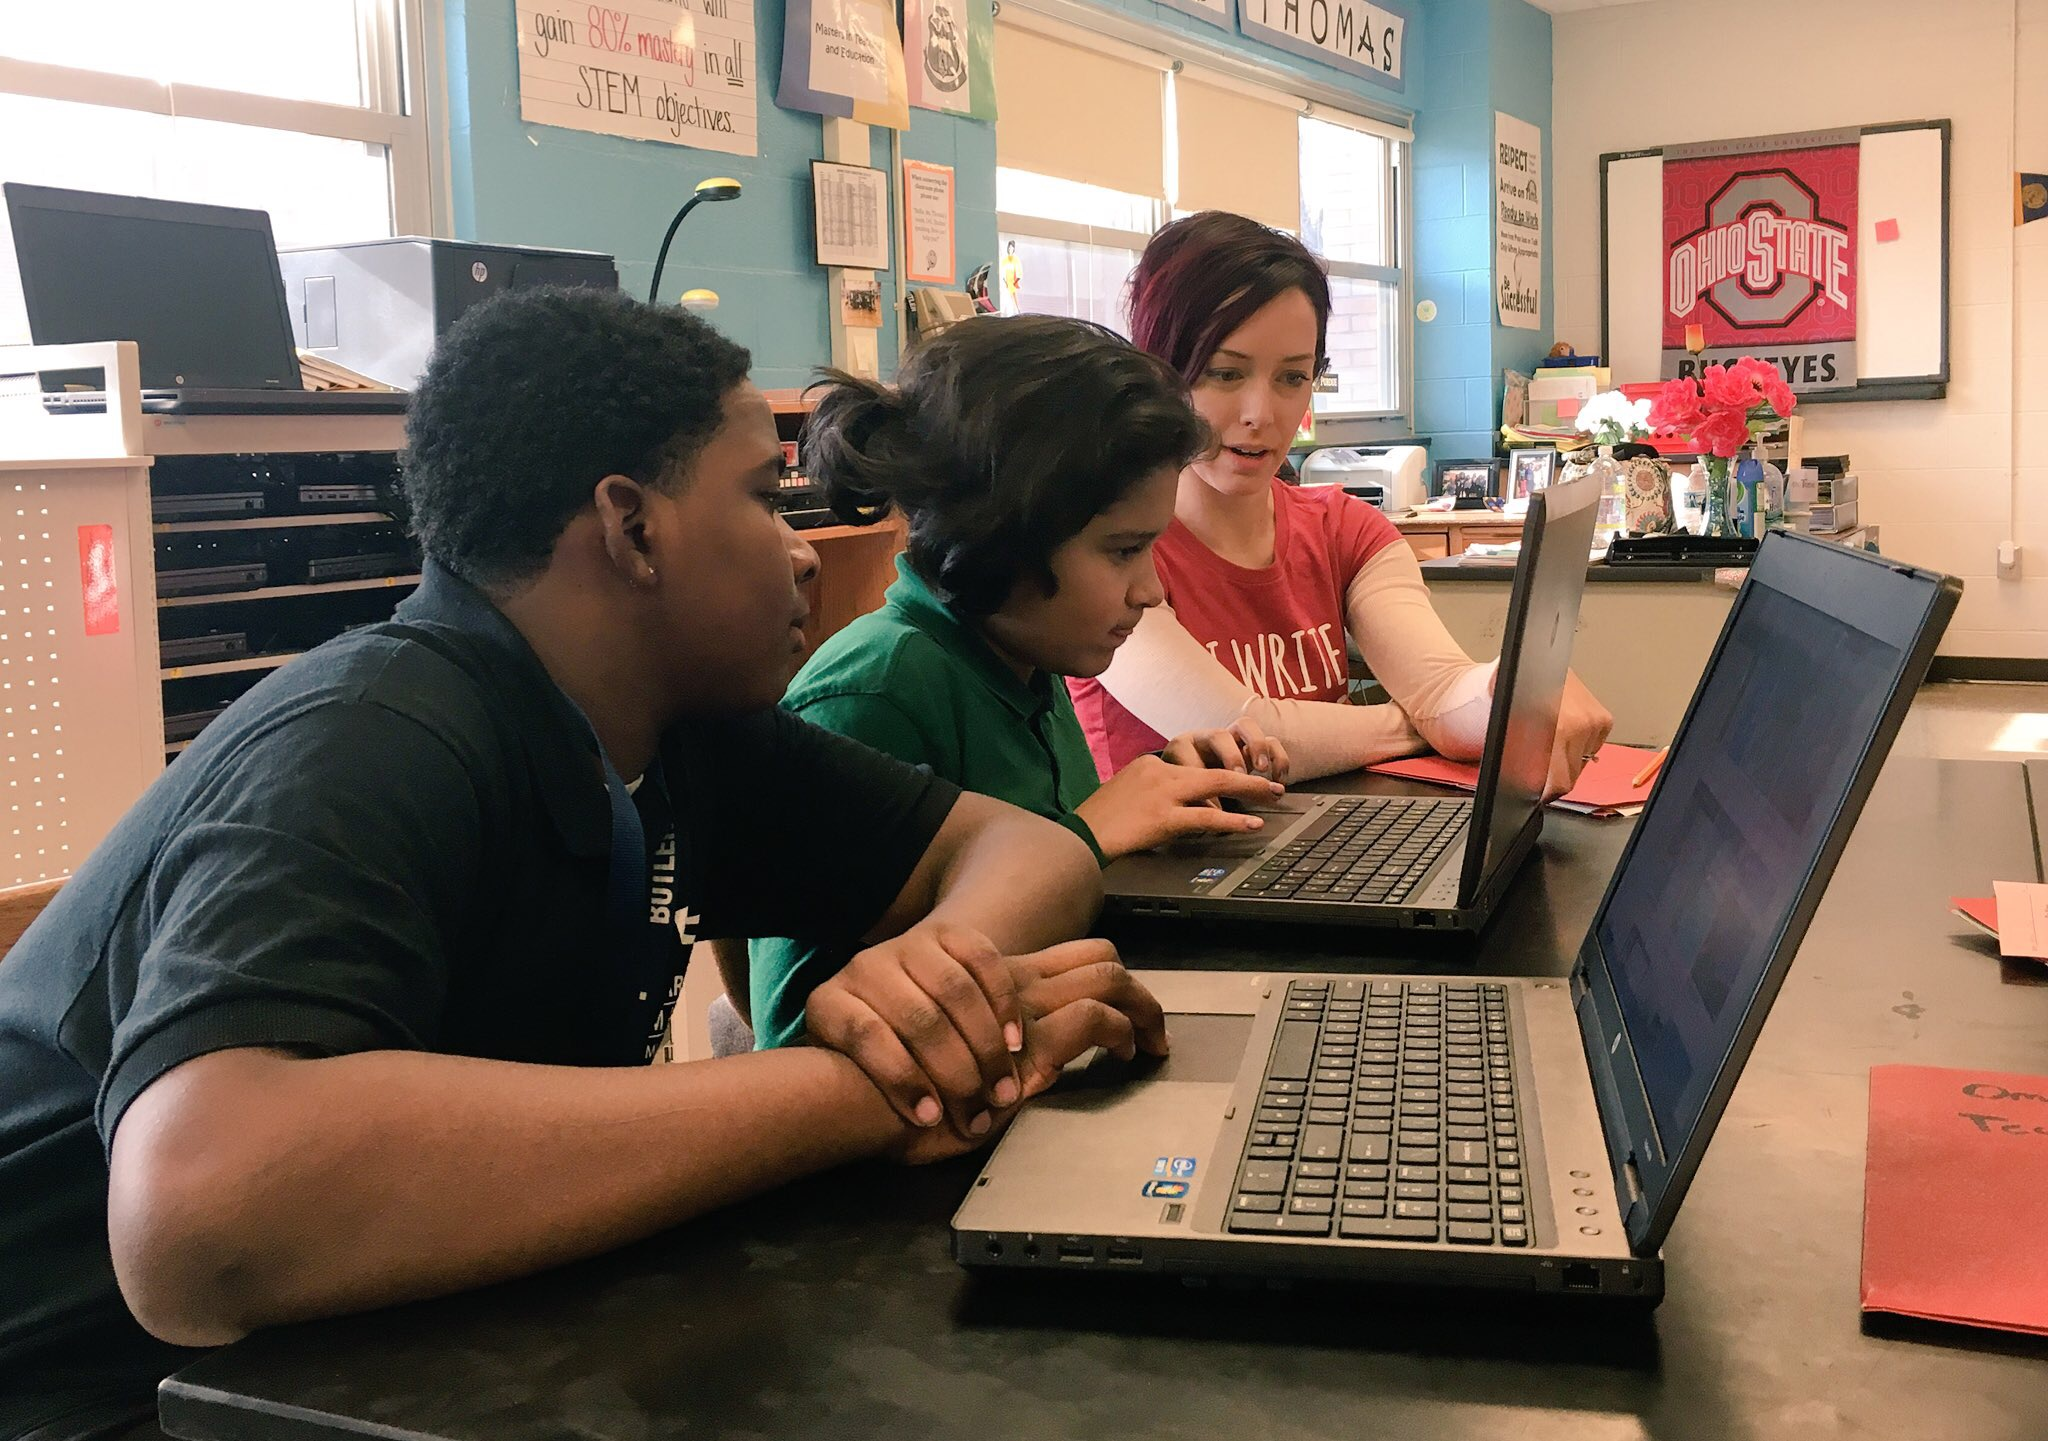 Lindsay Siovaila, co-founder of Girl Develop It - Indianapolis, works with students on an Hour of Code activity.